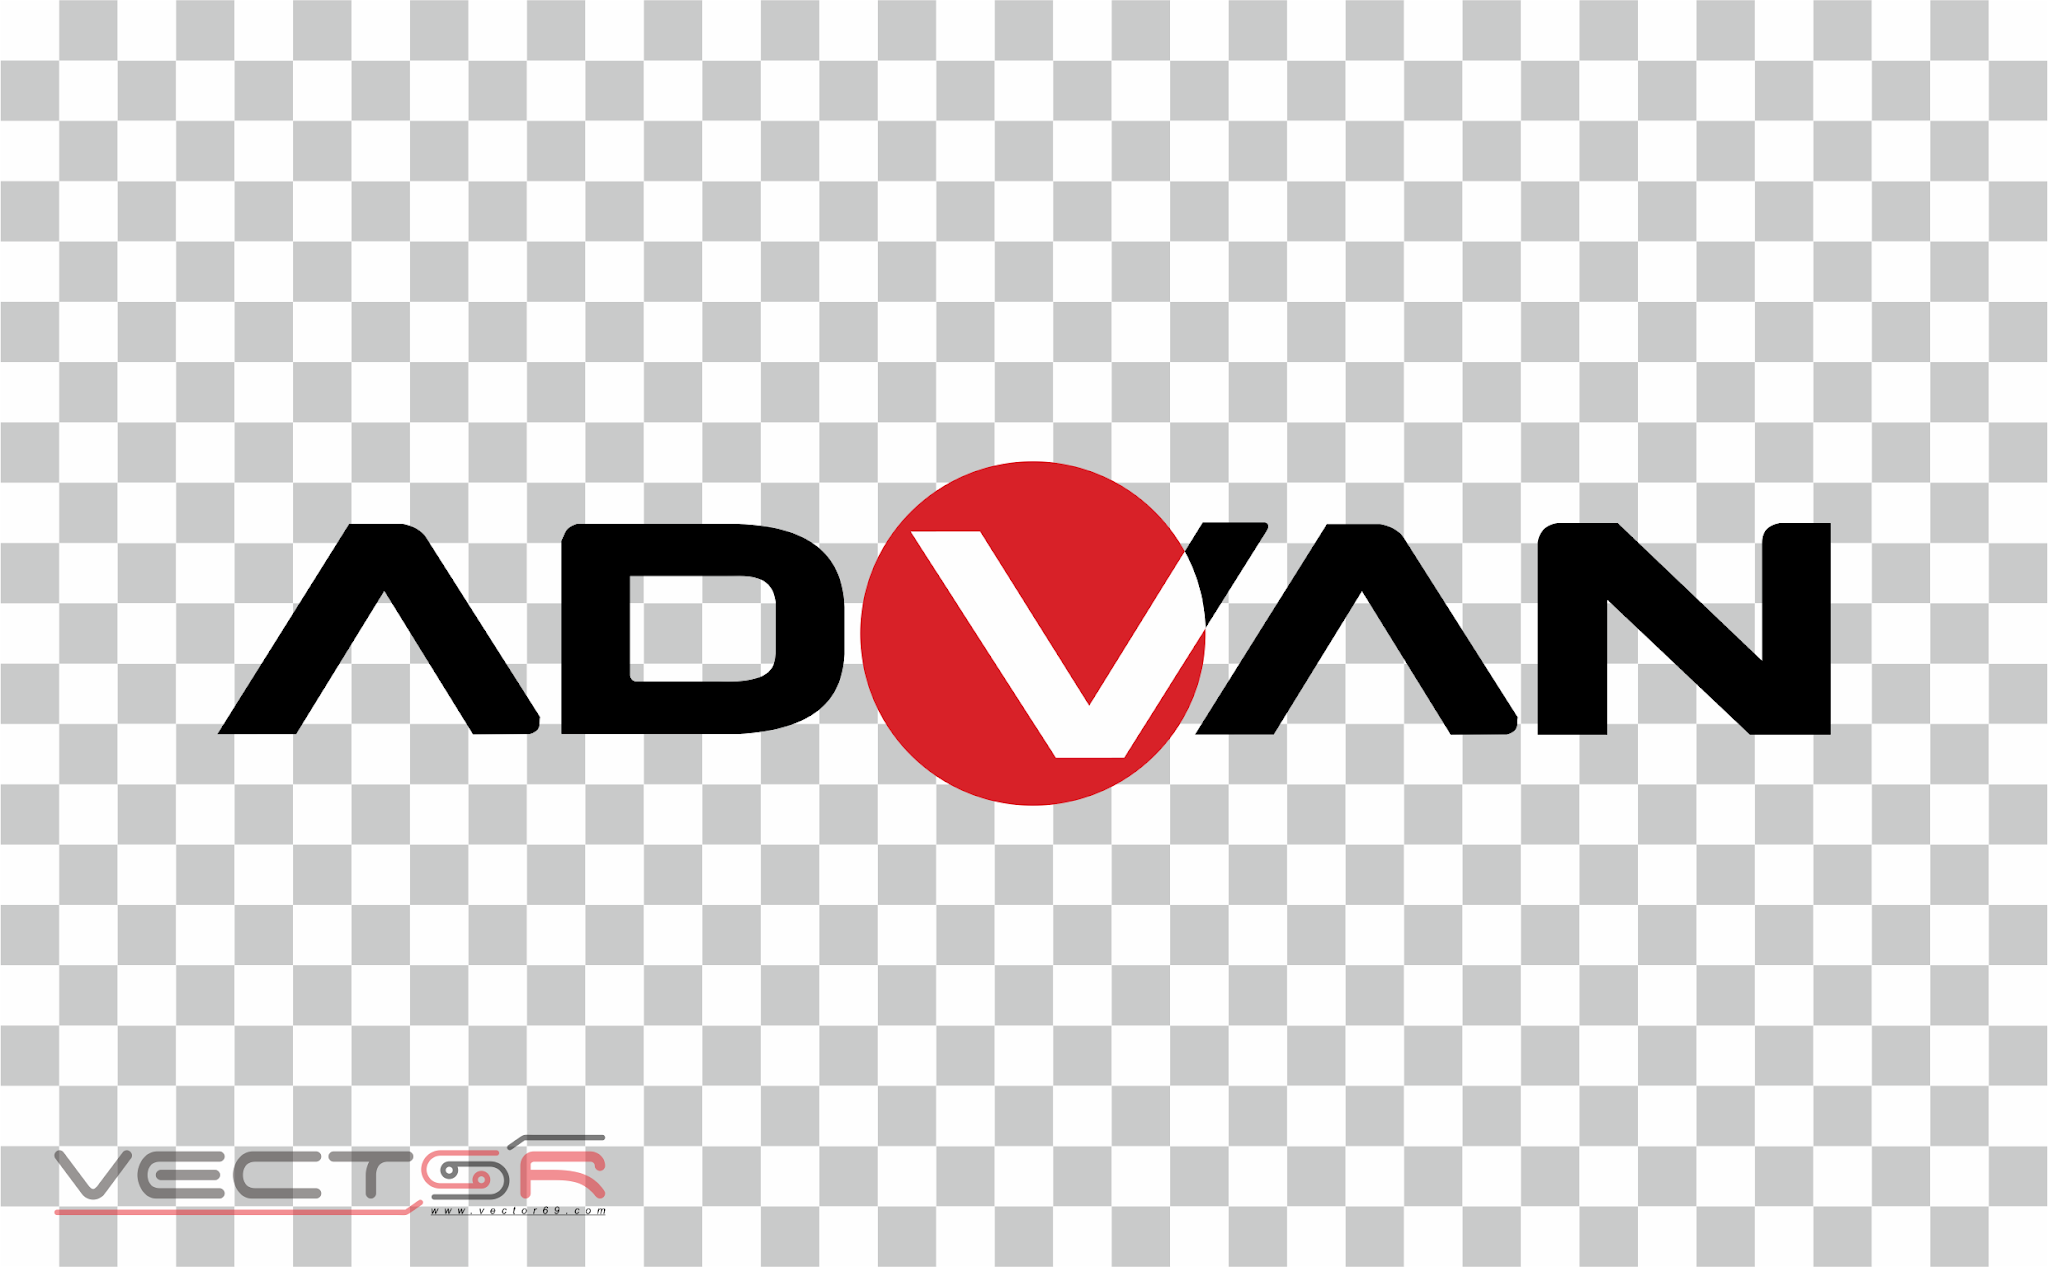 Advan Logo - Download Vector File PNG (Portable Network Graphics)